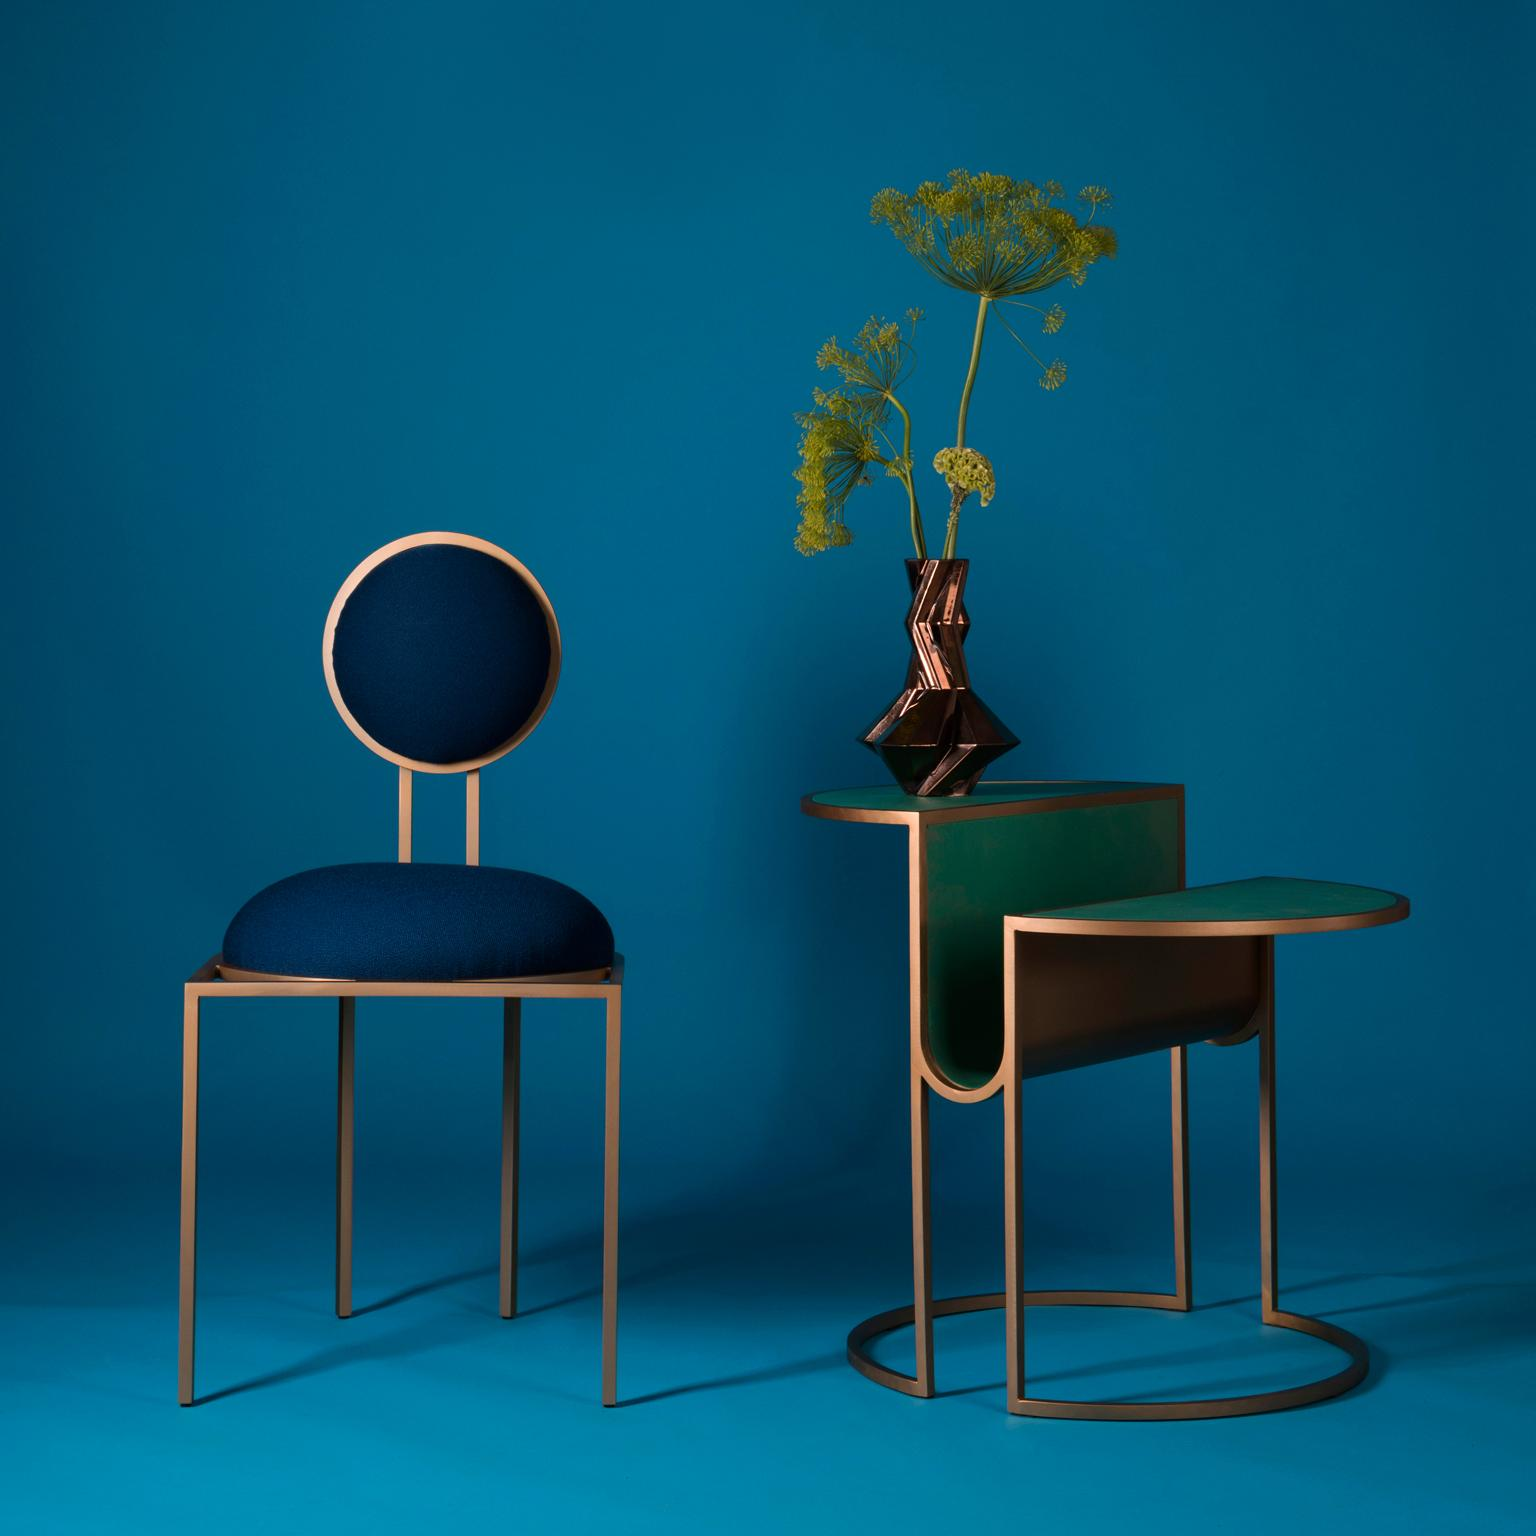 2019 Design Trends – The New Coffee and Side Tables by Lara Bohinc lara bohinc 2019 Design Trends – The New Coffee and Side Tables by Lara Bohinc Orbit Chair and Orbit Tea table1 master